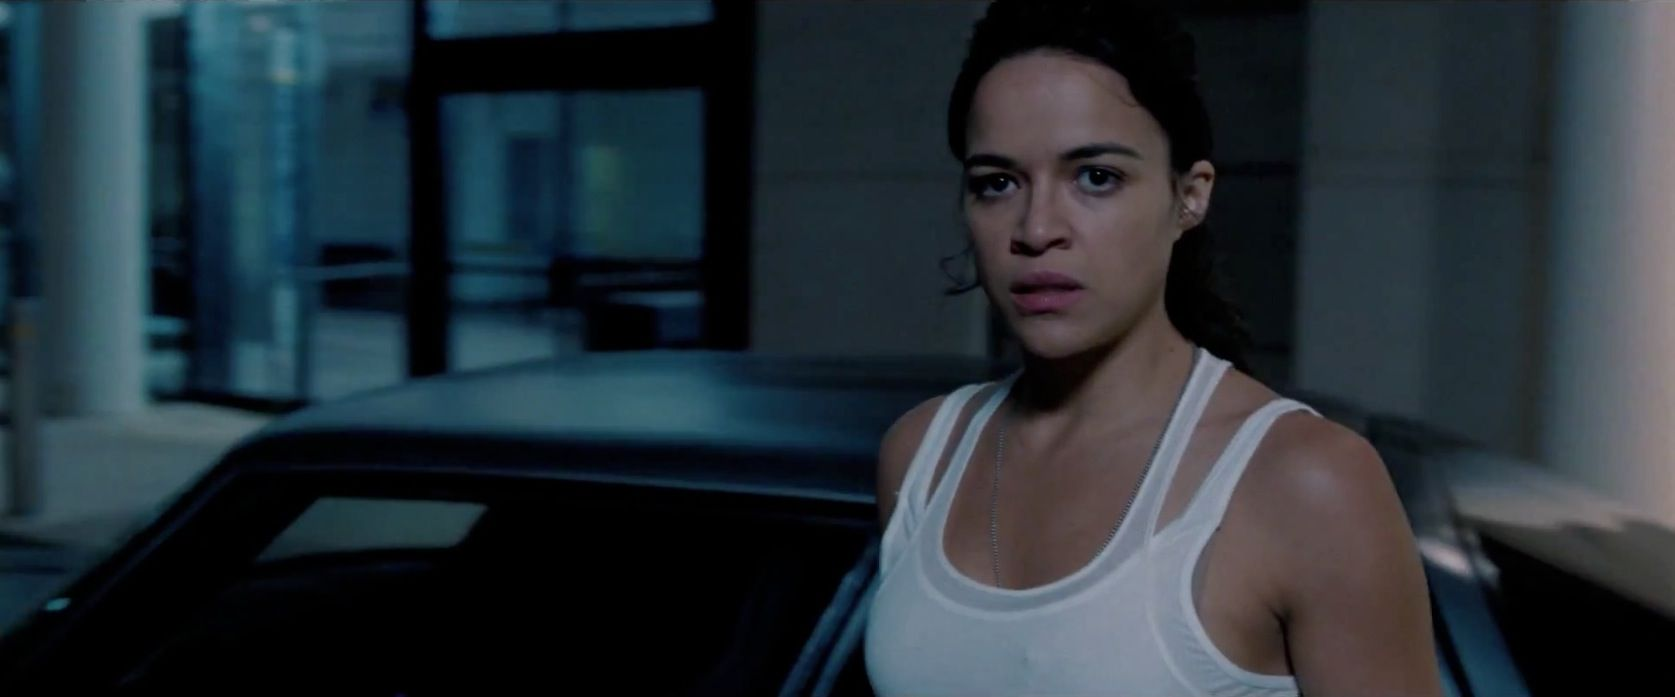 Letty, who suffers from amnesia, currently works for Owen and almost kills Dom.